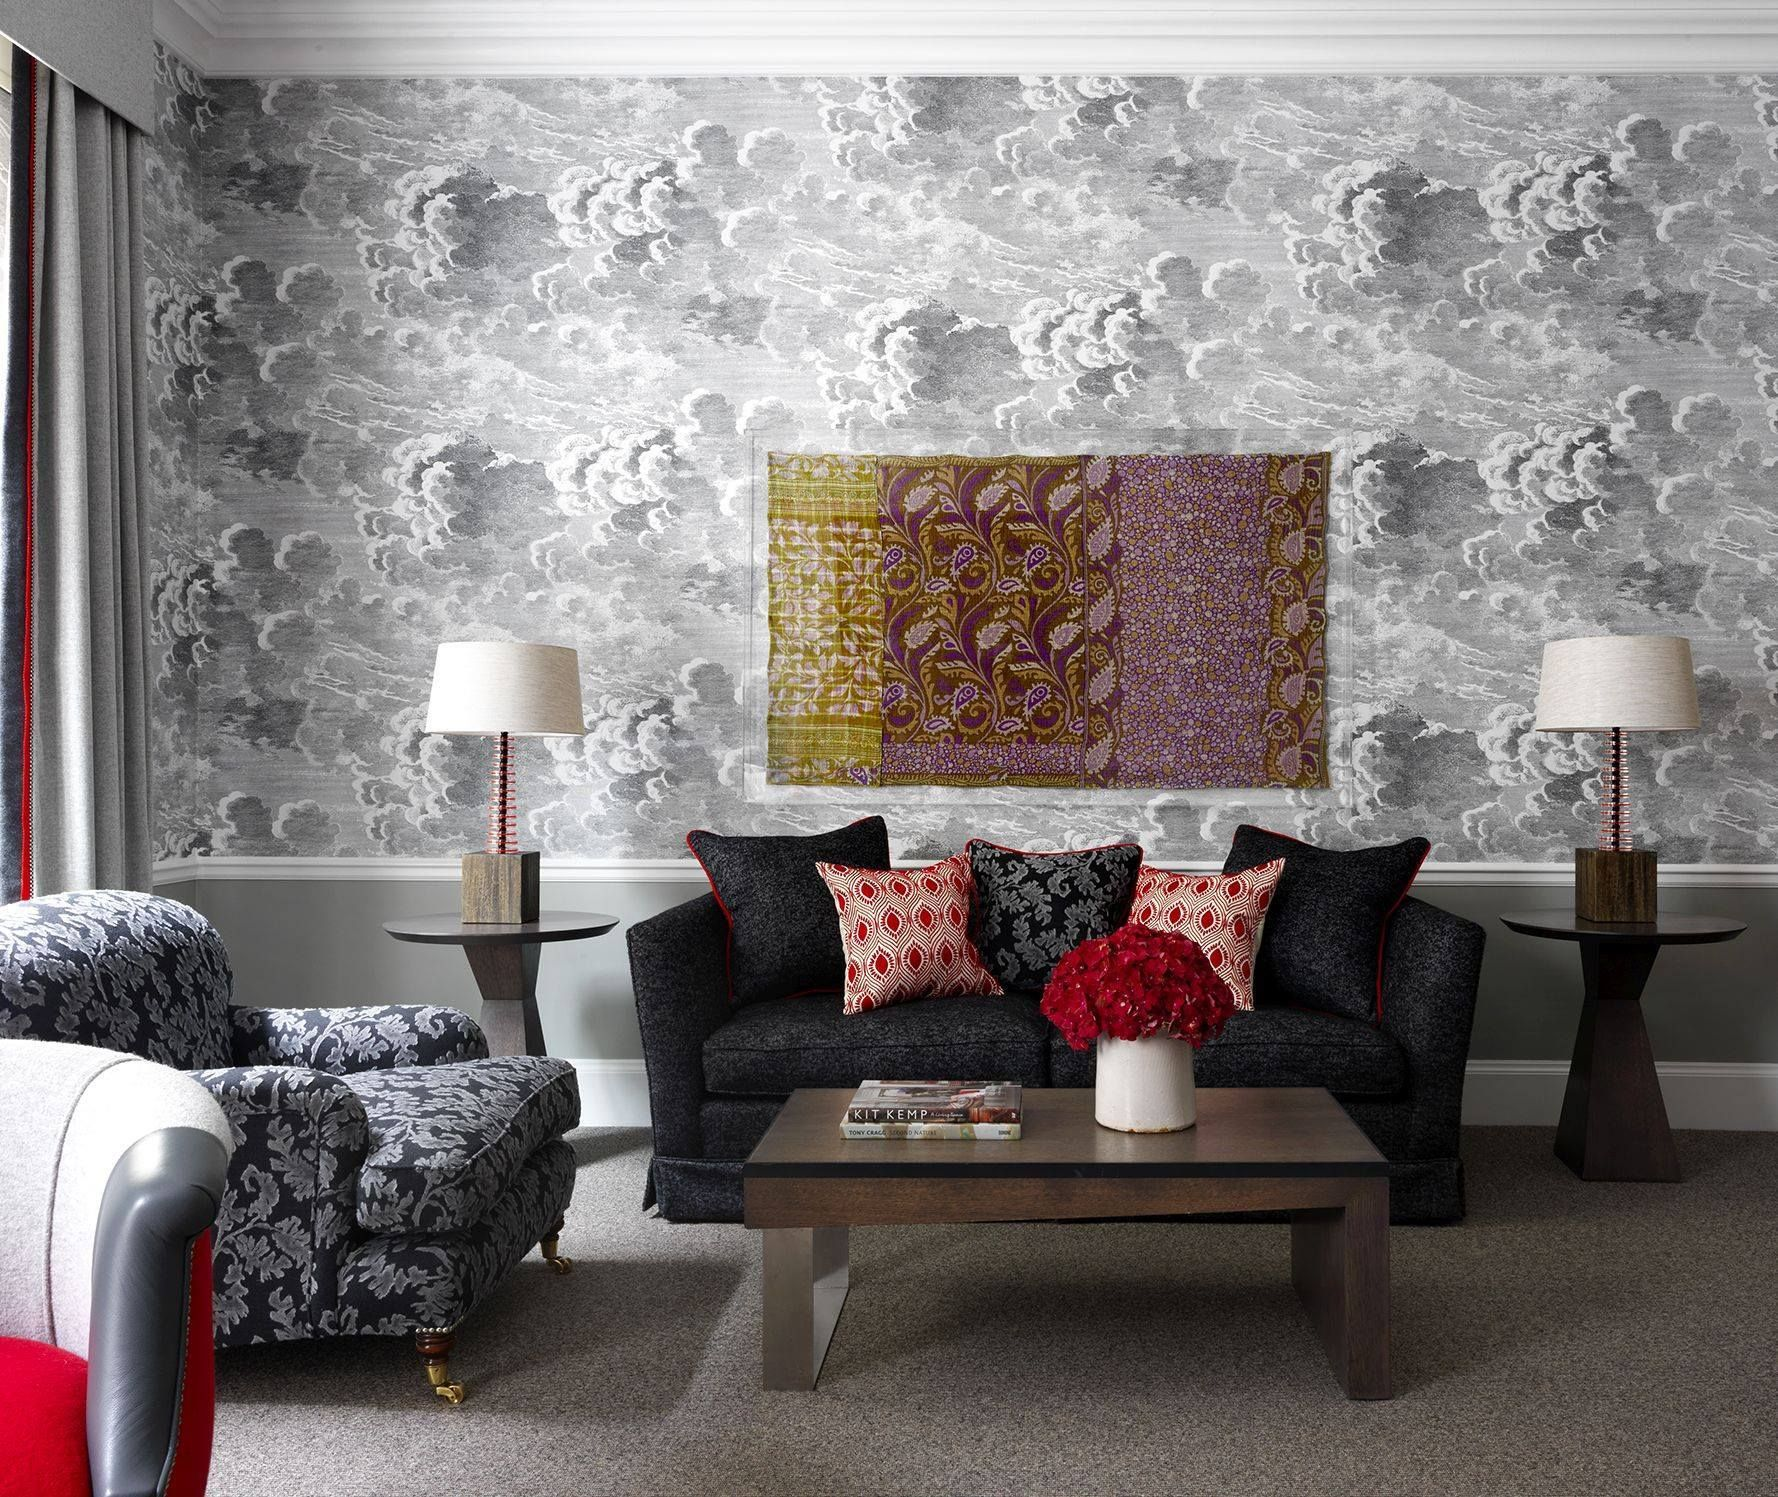 Cloud Wallpaper For Bedroom Patternsnap Cole And Son Cloud Wallpaper 39fornasetti Ii